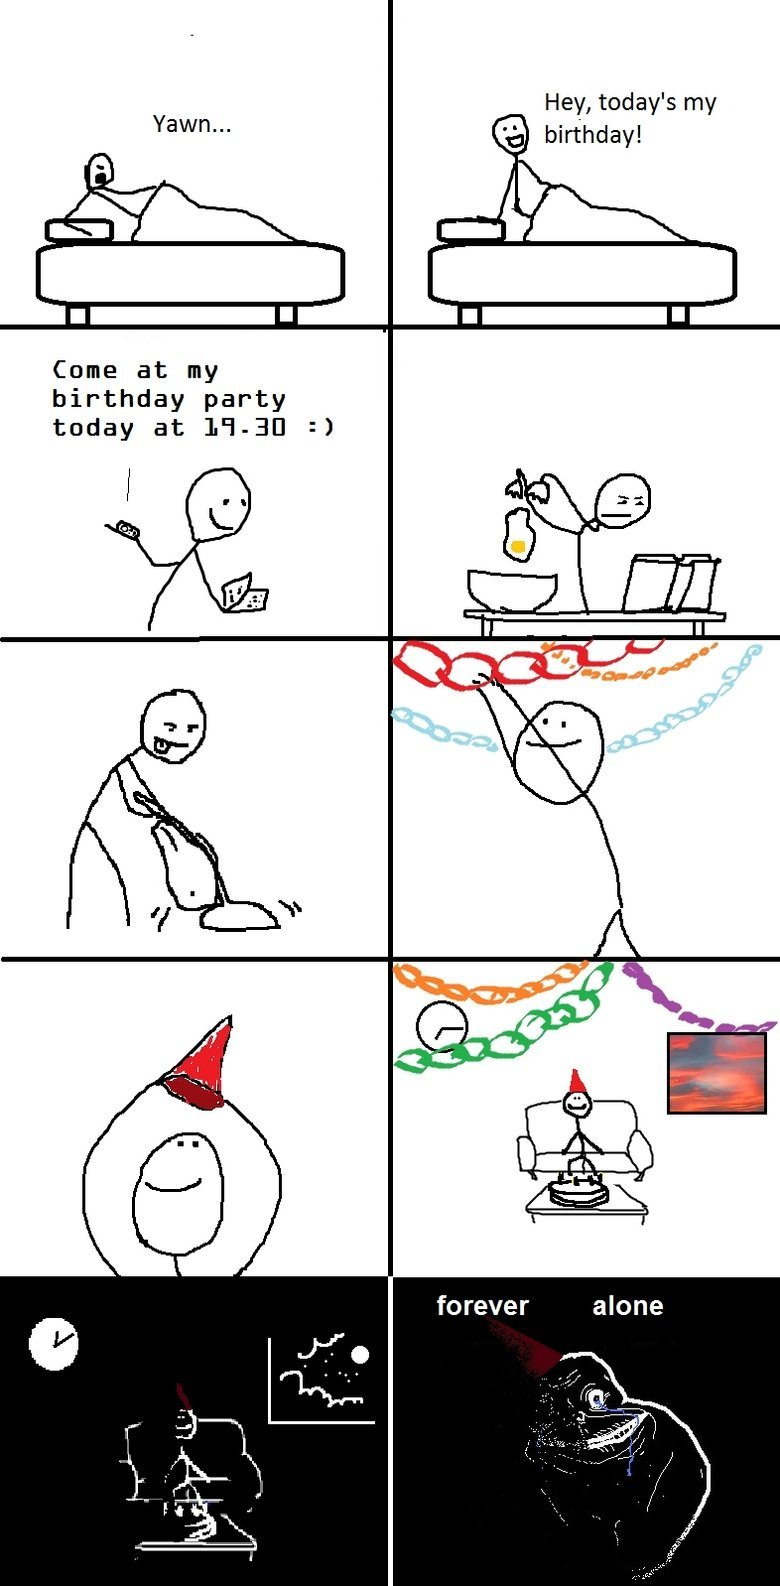 Forever Alone. ...Forever Alone.... Hey, tooday' s my Yawn... ('ijl birthday! Came at my birthday party taday at s?. How sad :(